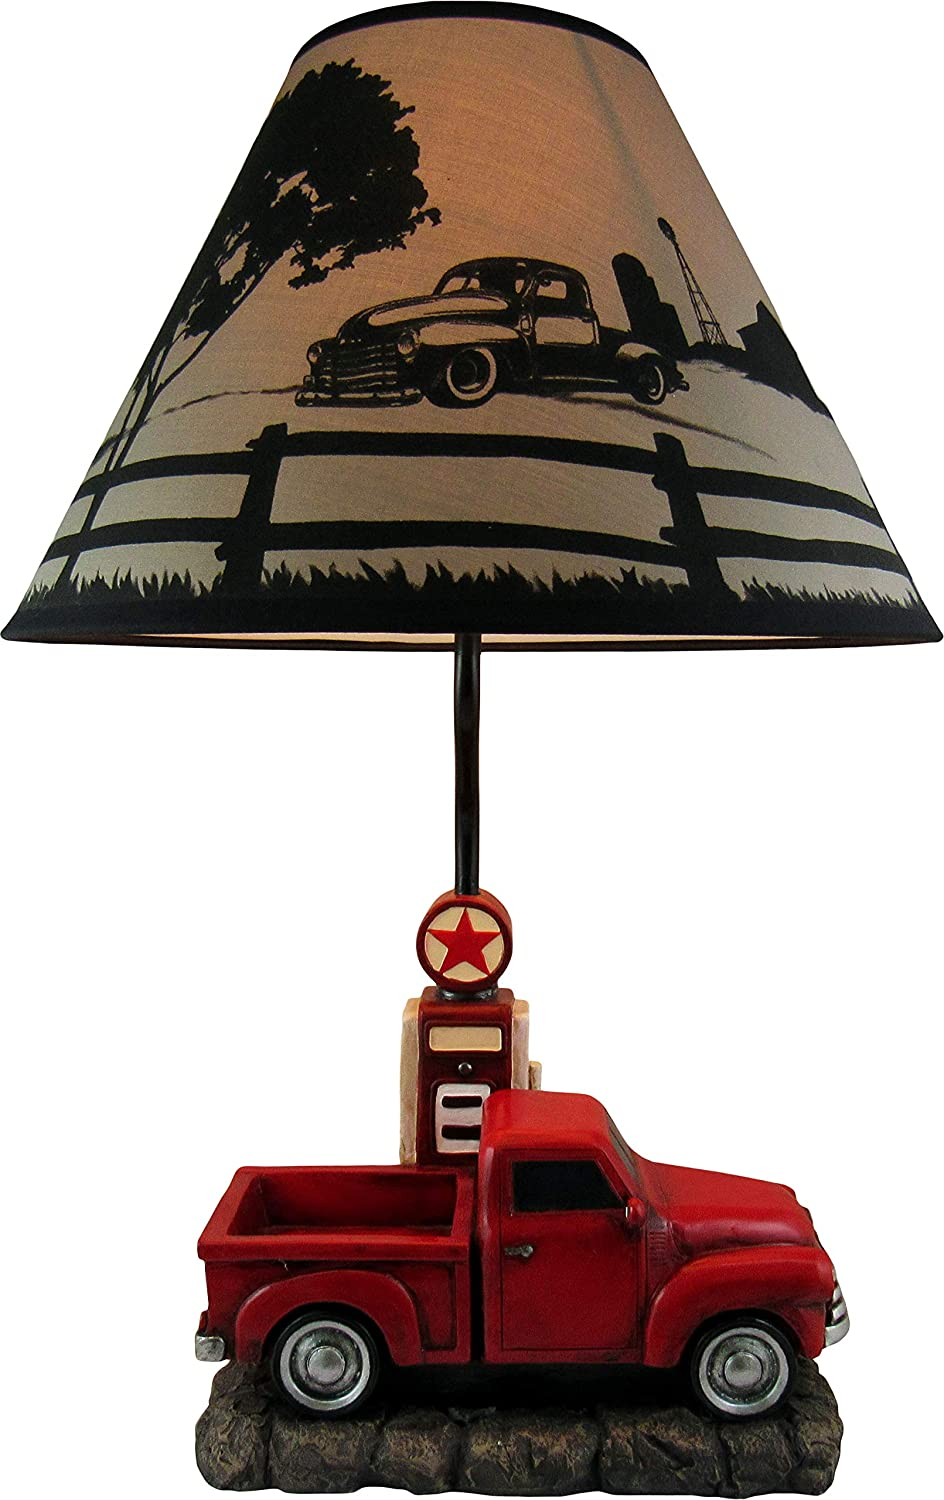 DWK - Big Red - Classic Vintage Pickup Truck with Gas Pump Table Lamp with Decorative Country Scene Shade Mechanic Garage Man Cave Den Bar Home Décor Accent Light, 20-inch